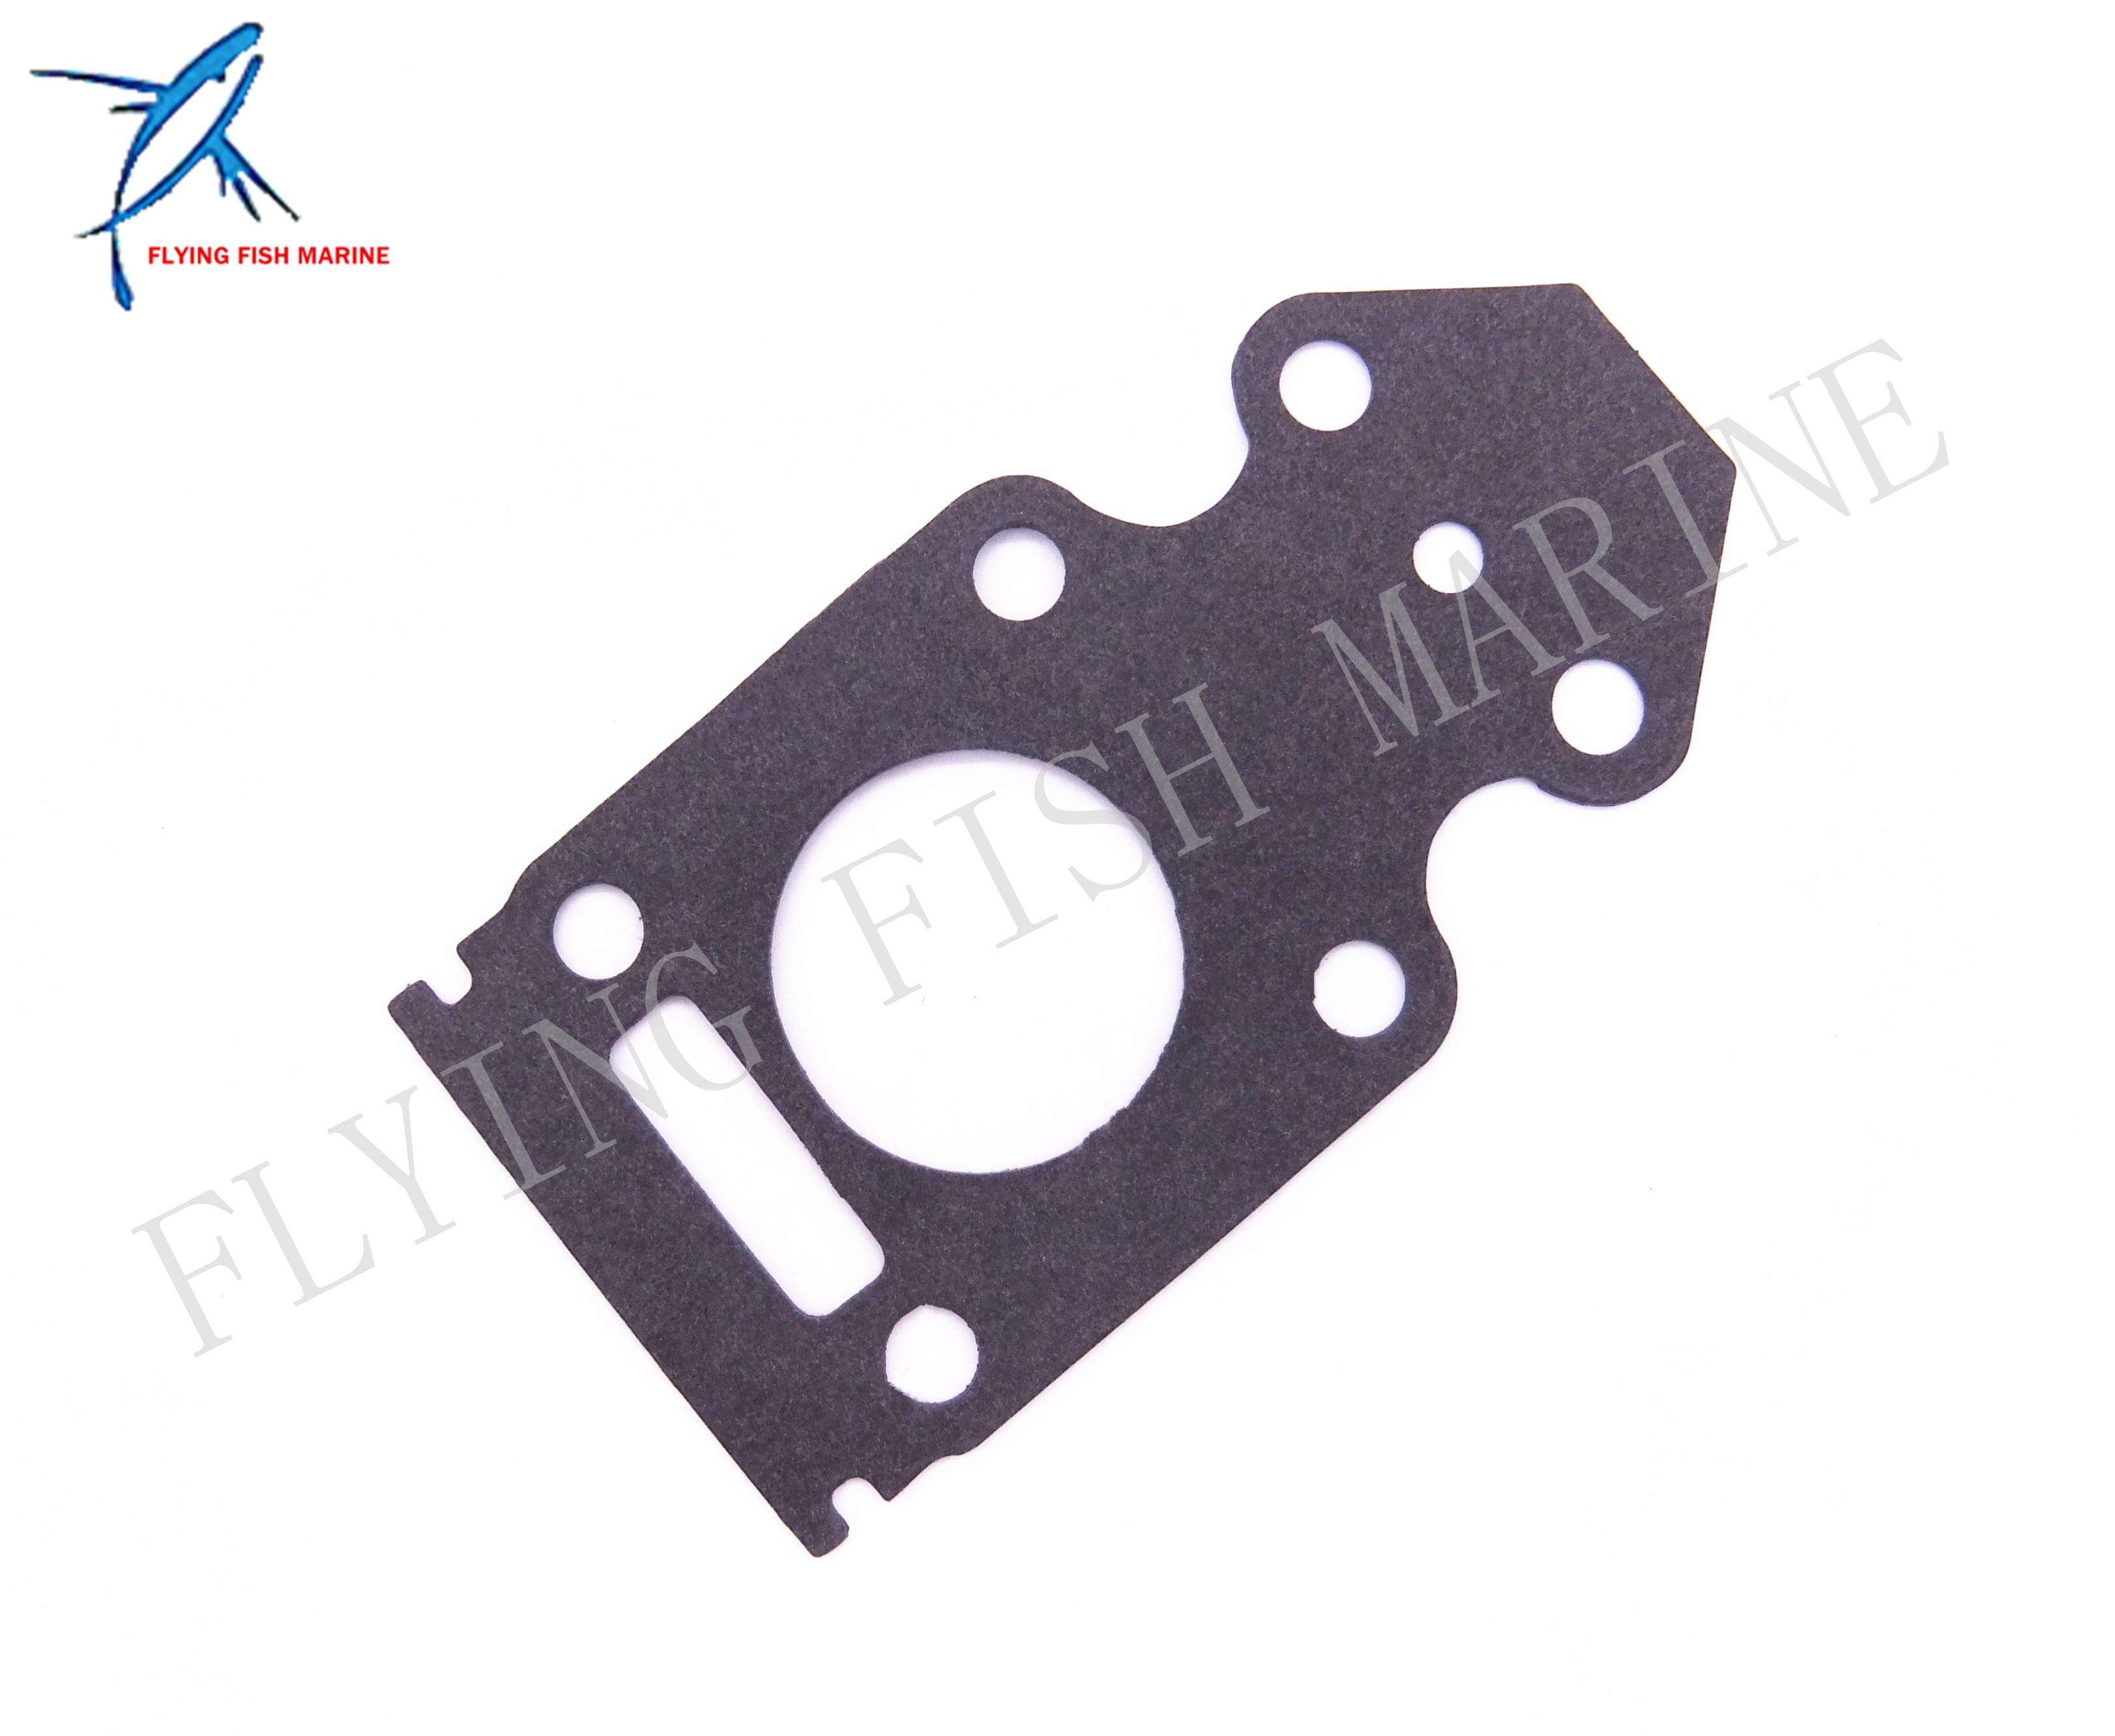 Boat motor 63v 45315 a0 lower casing packing gasket for for Yamaha 9 9 price